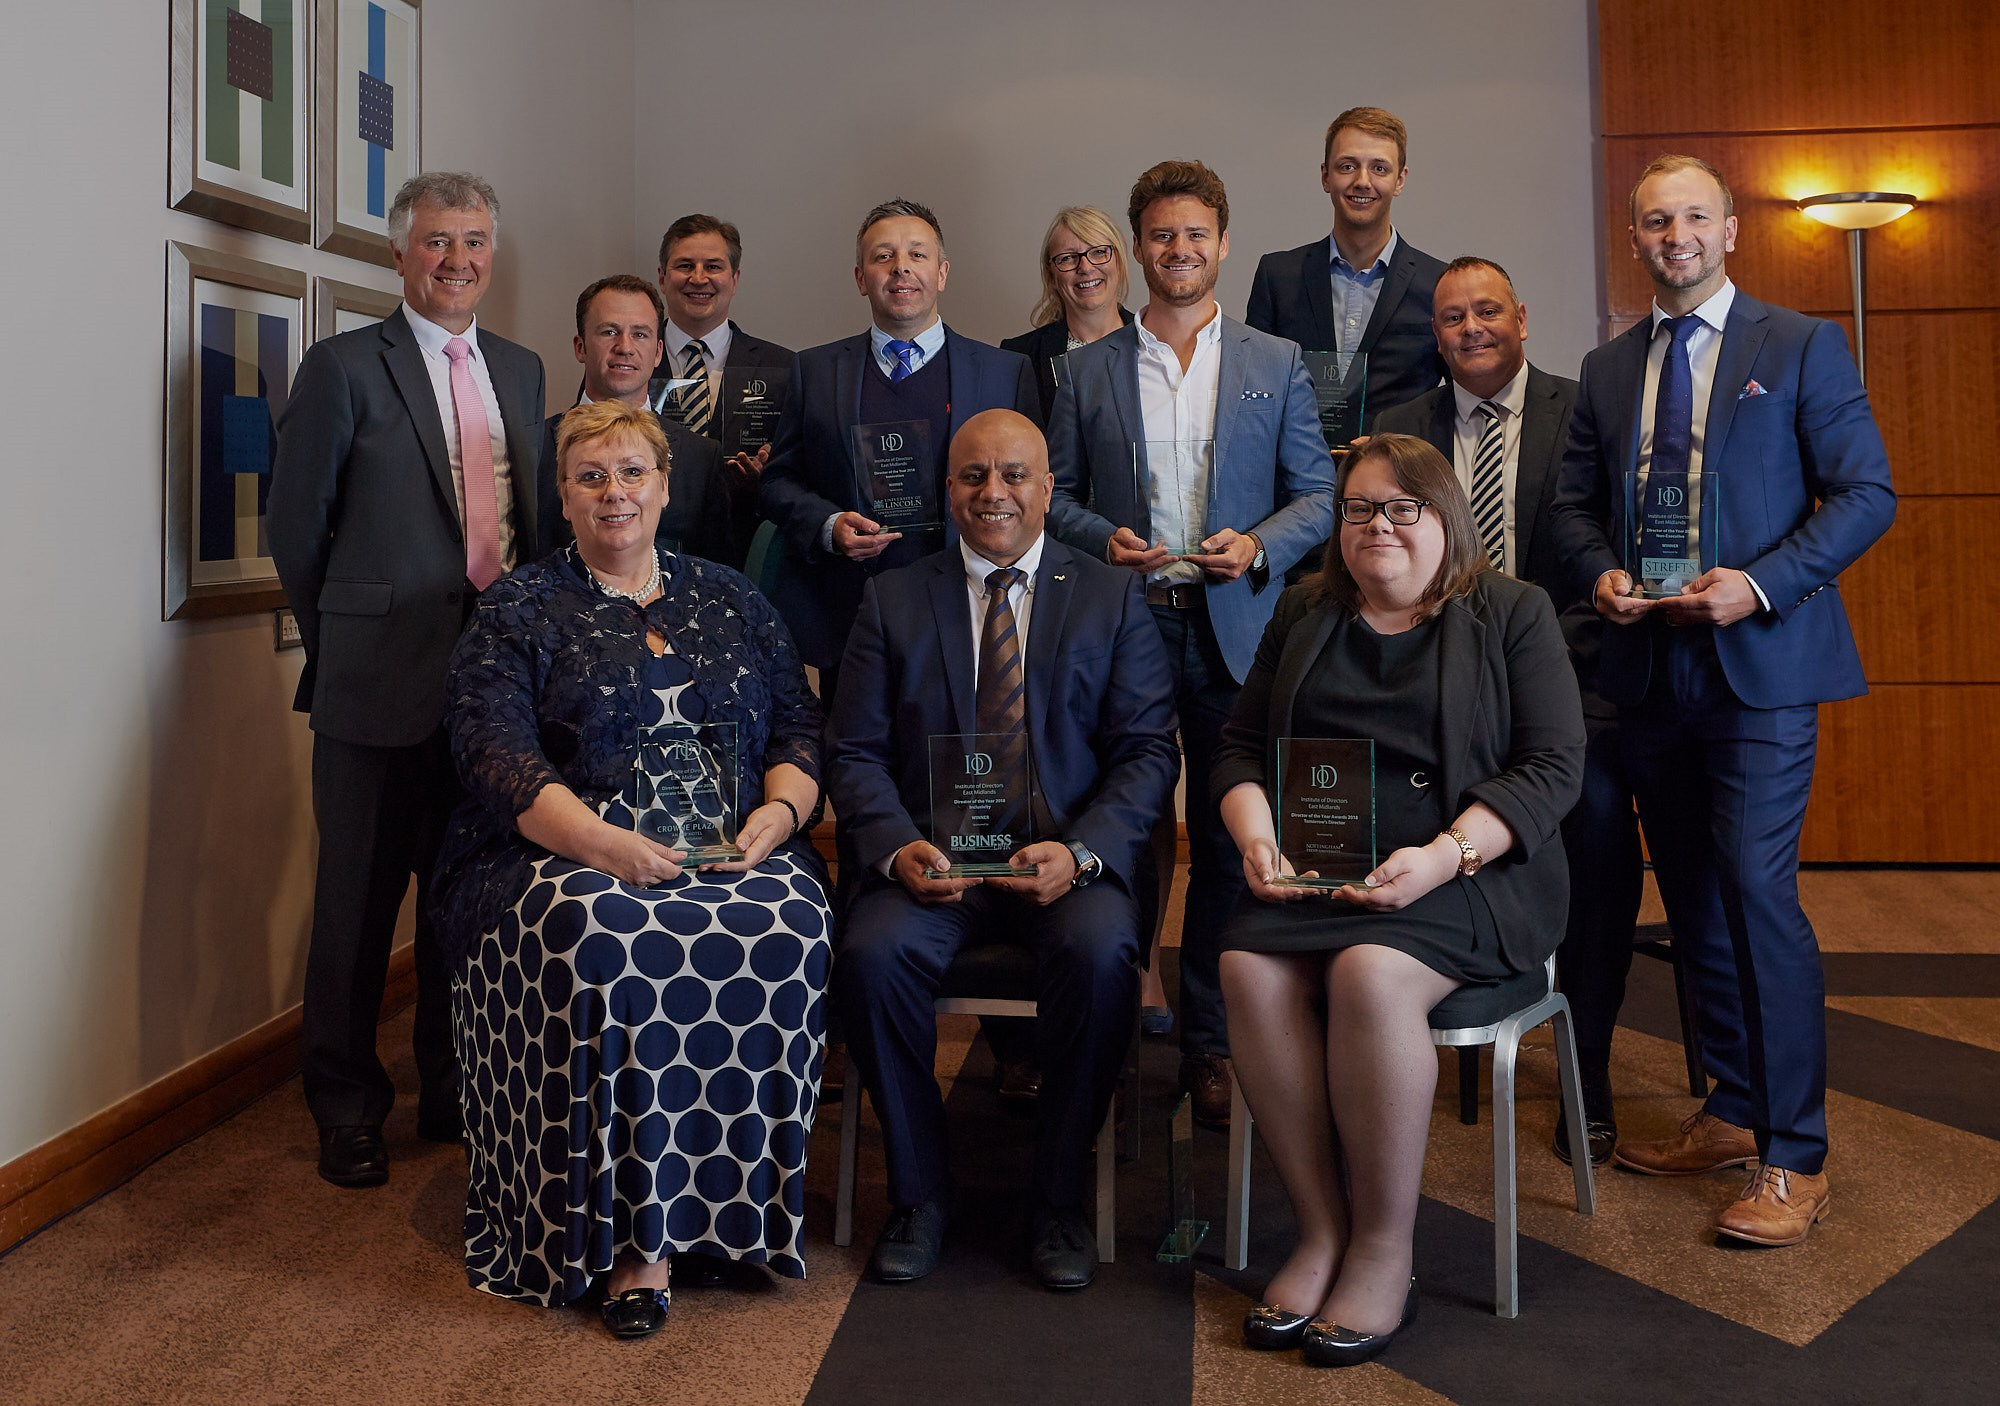 IoD Award Winners